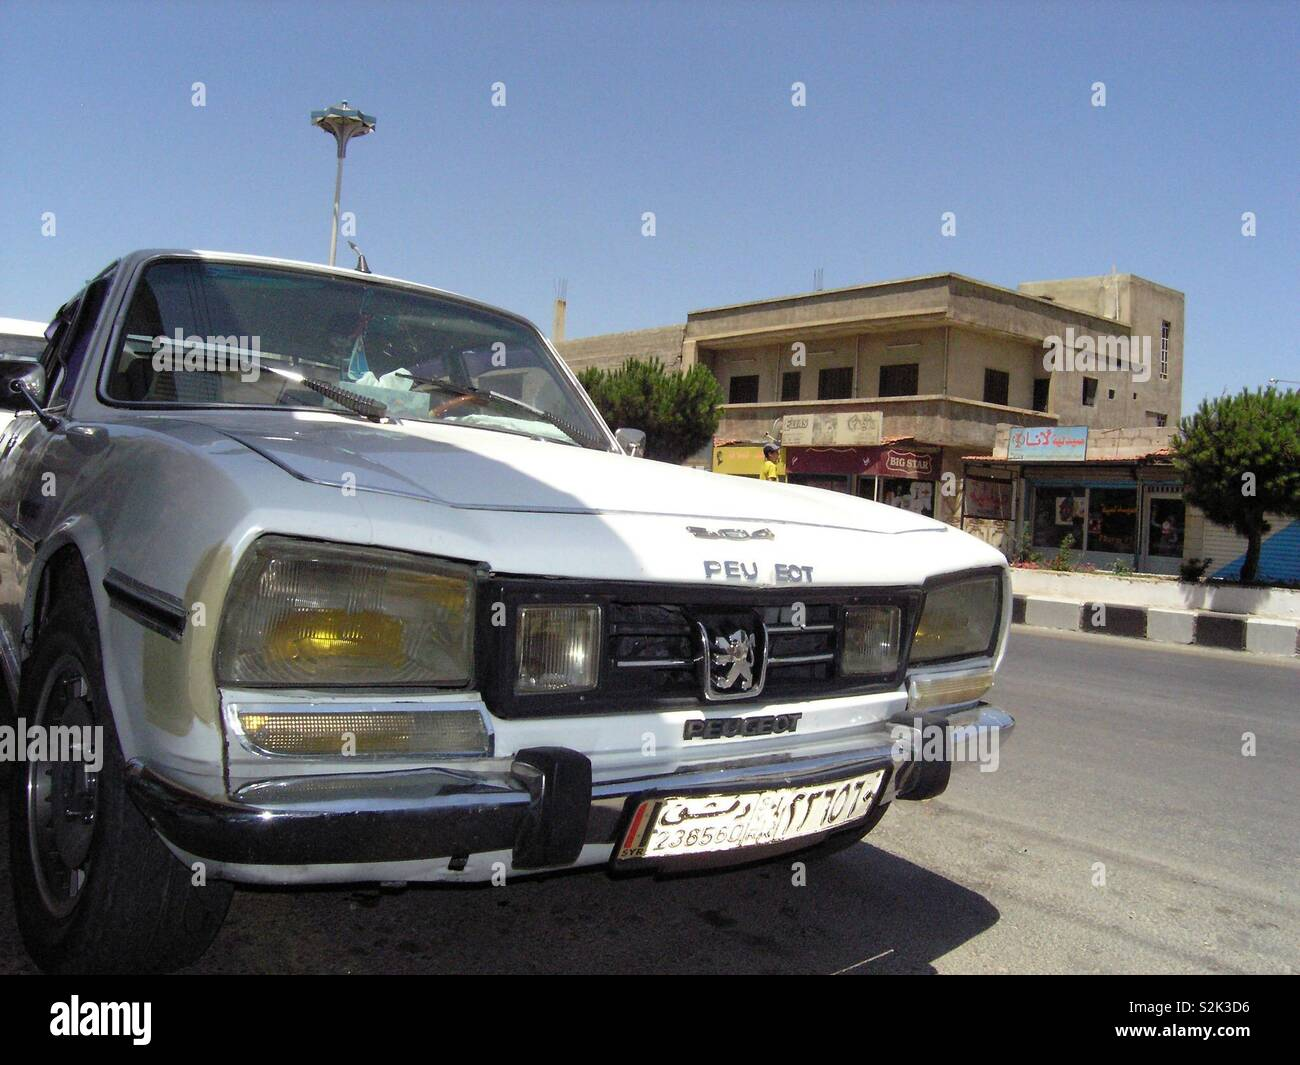 Old Model Of Peugeot 504 On Syrian Street Stock Photo Alamy